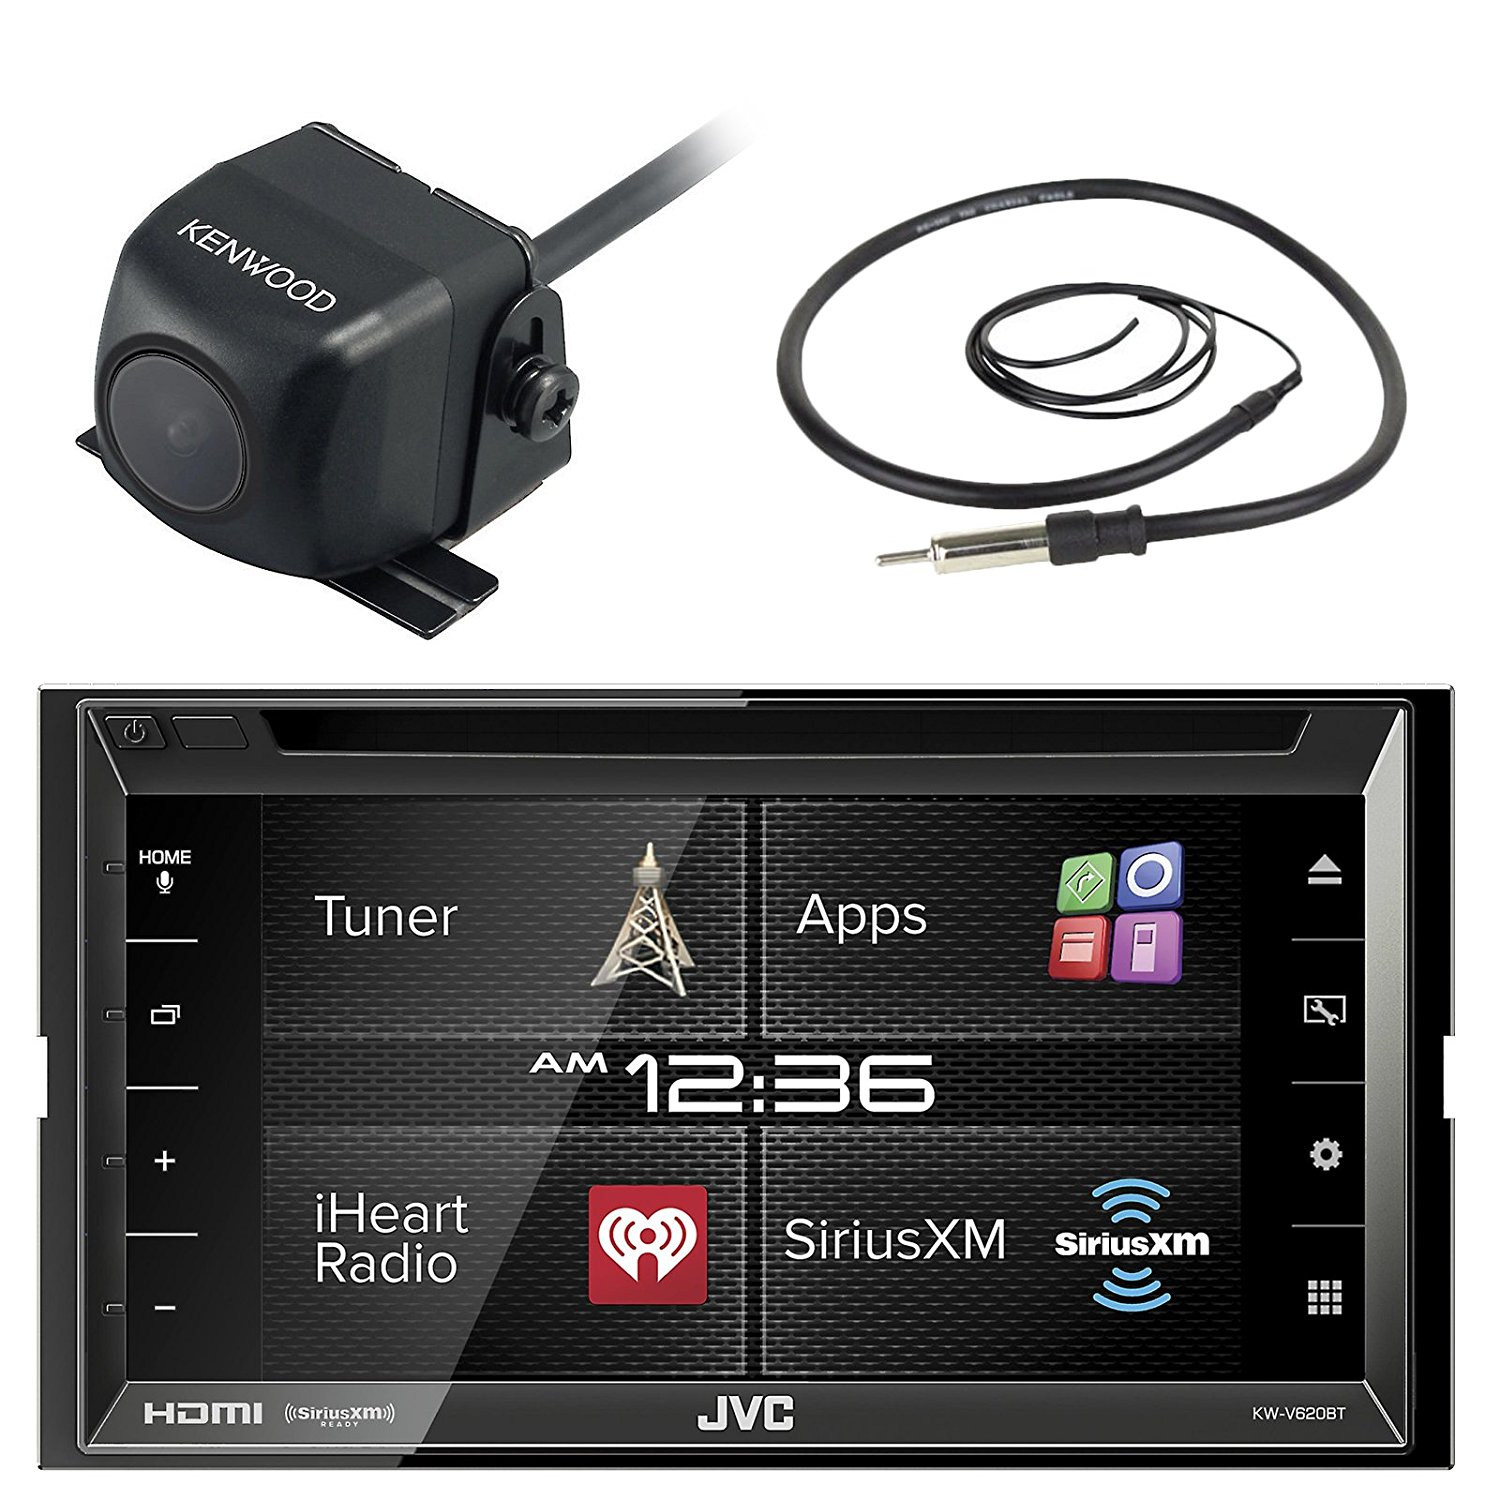 "JVC KW-V620BT 6.8"" Inch Double DIN Car CD DVD USB Bluetooth Stereo Receiver Bundle Combo With Kenwood CMOS-22P Universal Waterproof Rear-View Backup Parking Camera, Enrock 22"" AM/FM Radio Antenna"